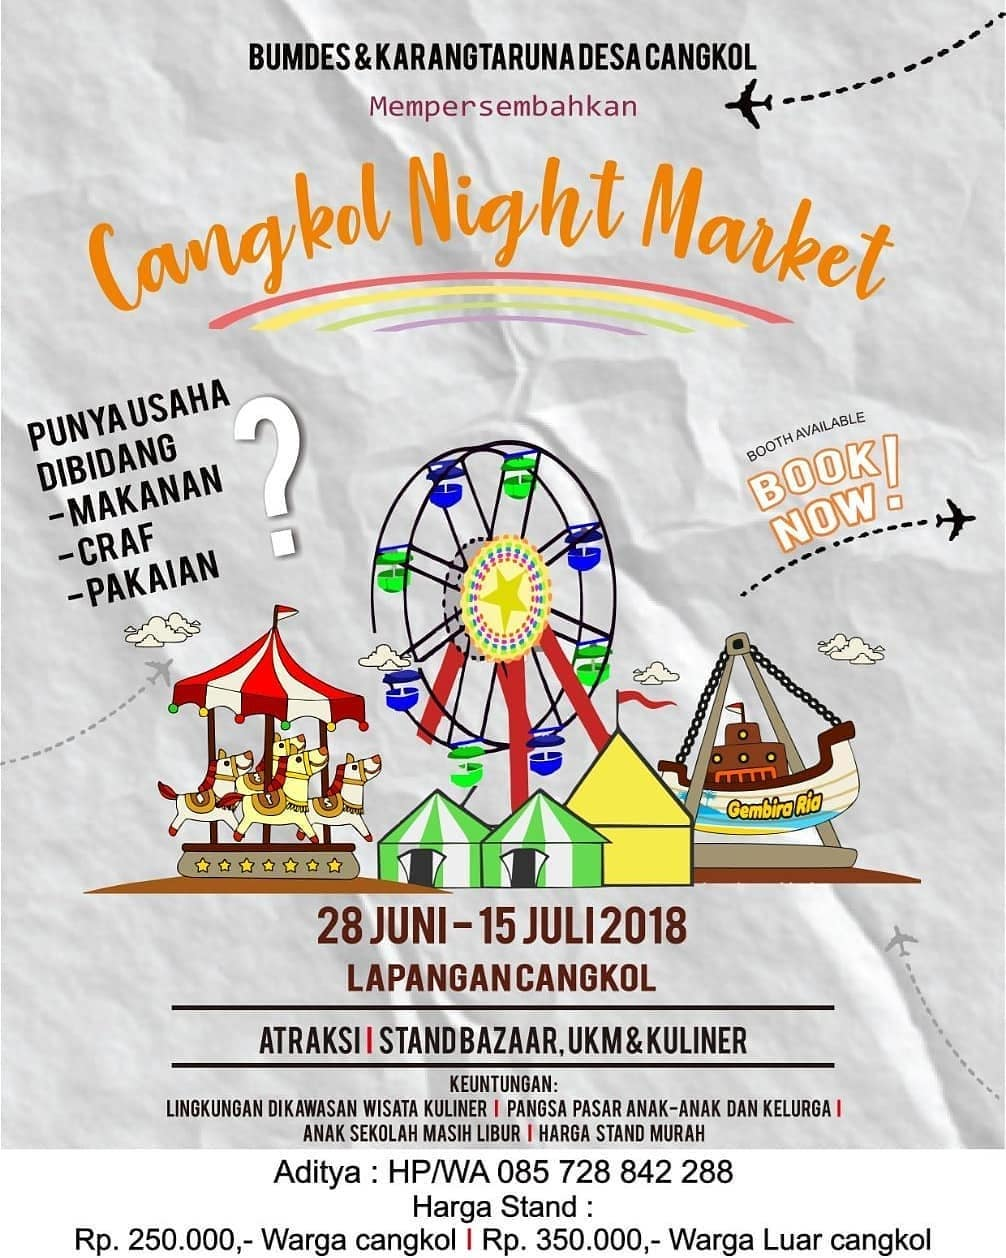 EVENT SOLO - CANGKOL NIGHT MARKET